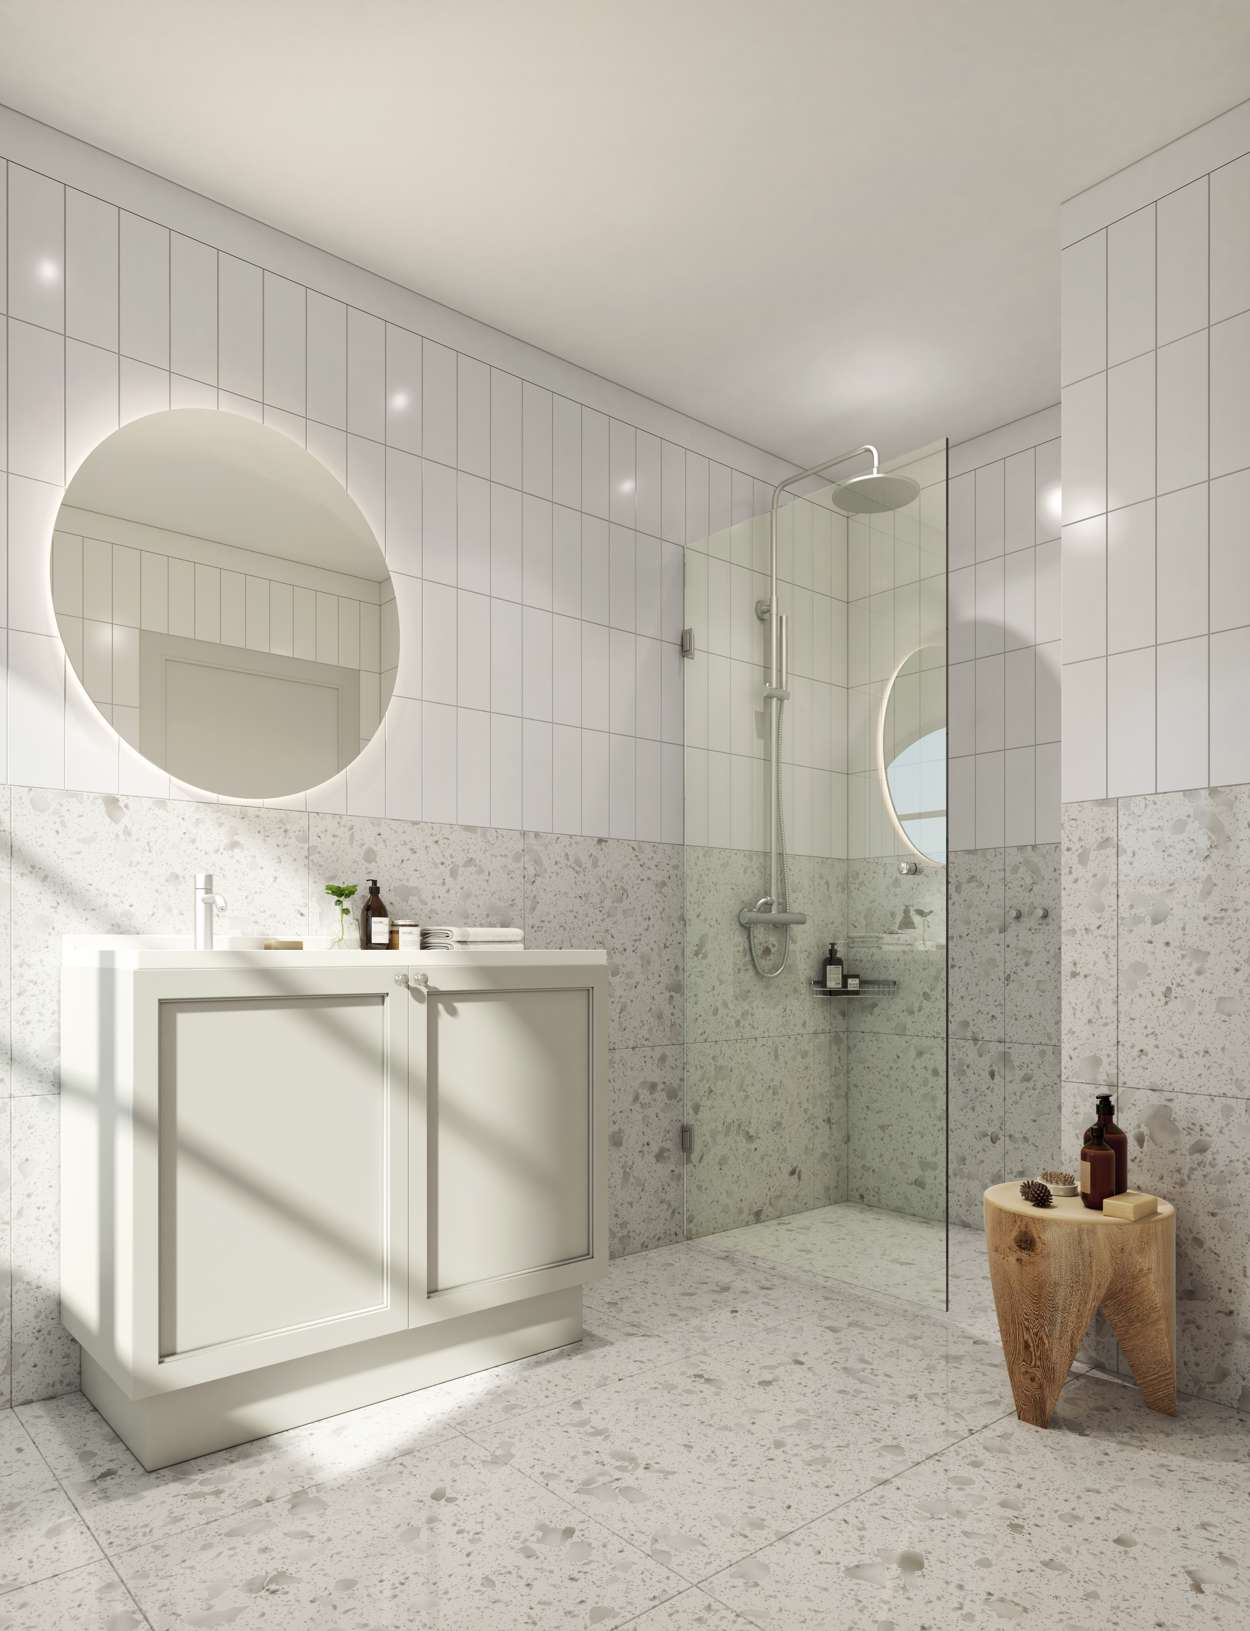 Final render bathroom